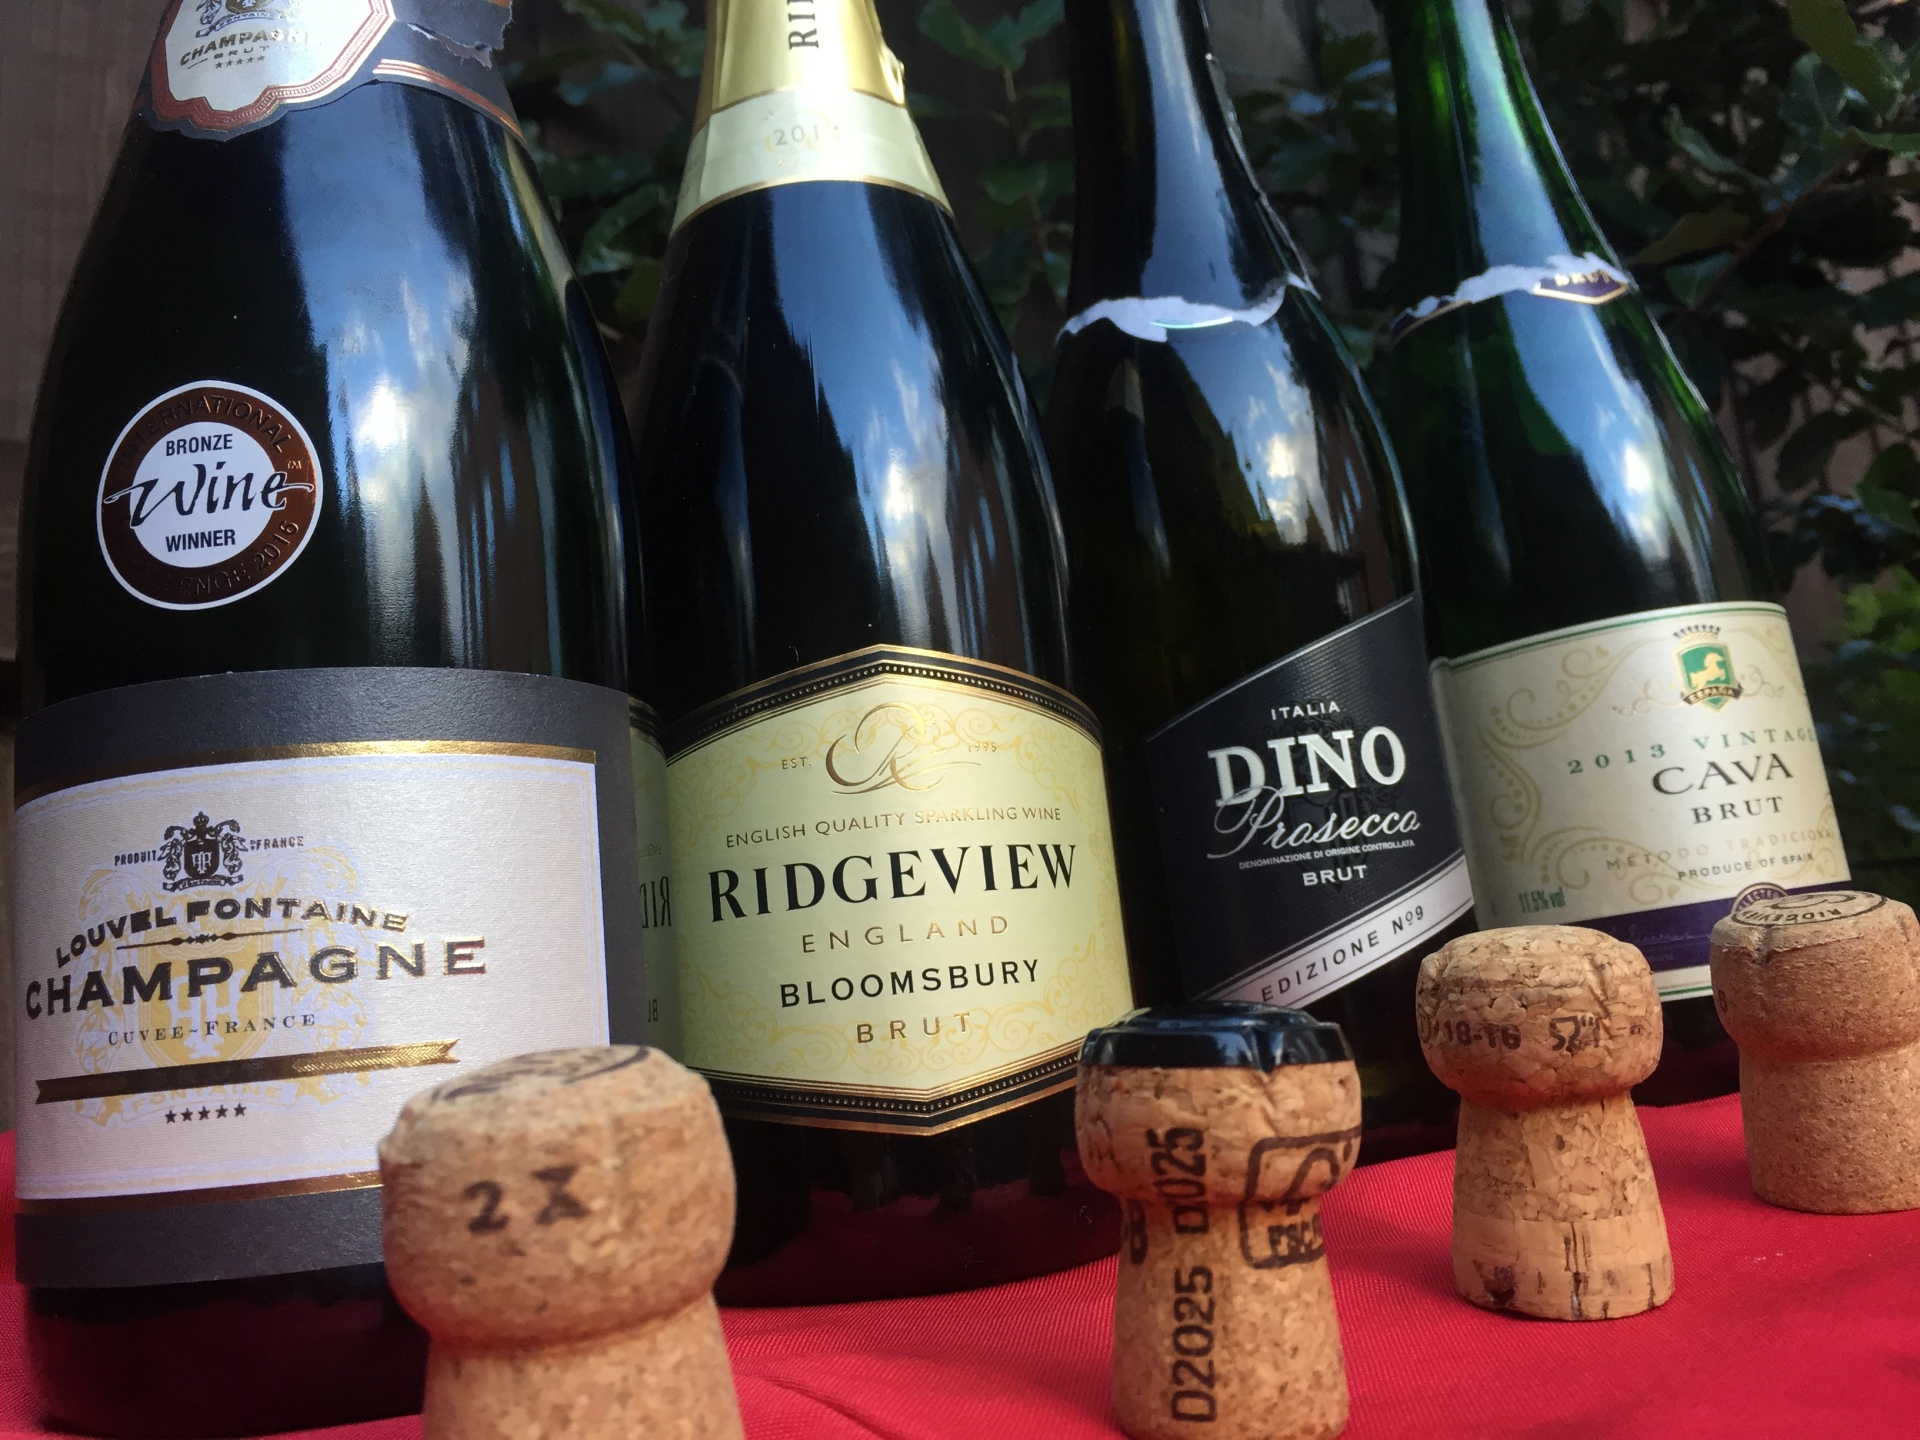 Blind tasting bottles of fizz line up for battle